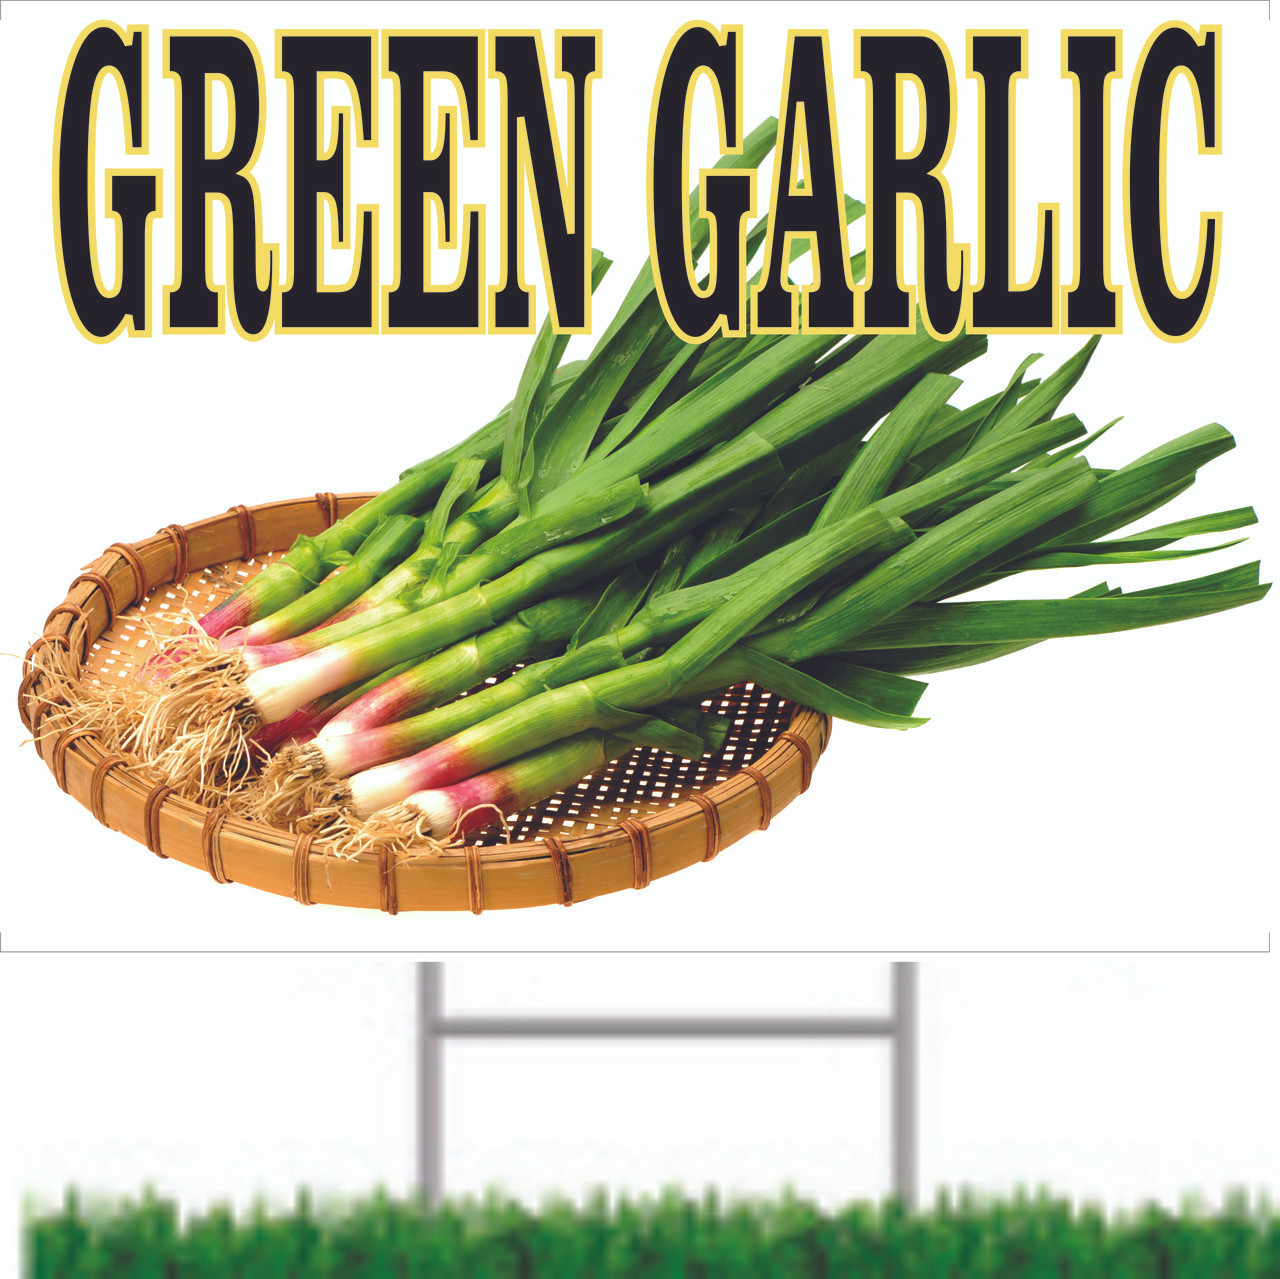 Green garlic road sign in living color gets you noticed.